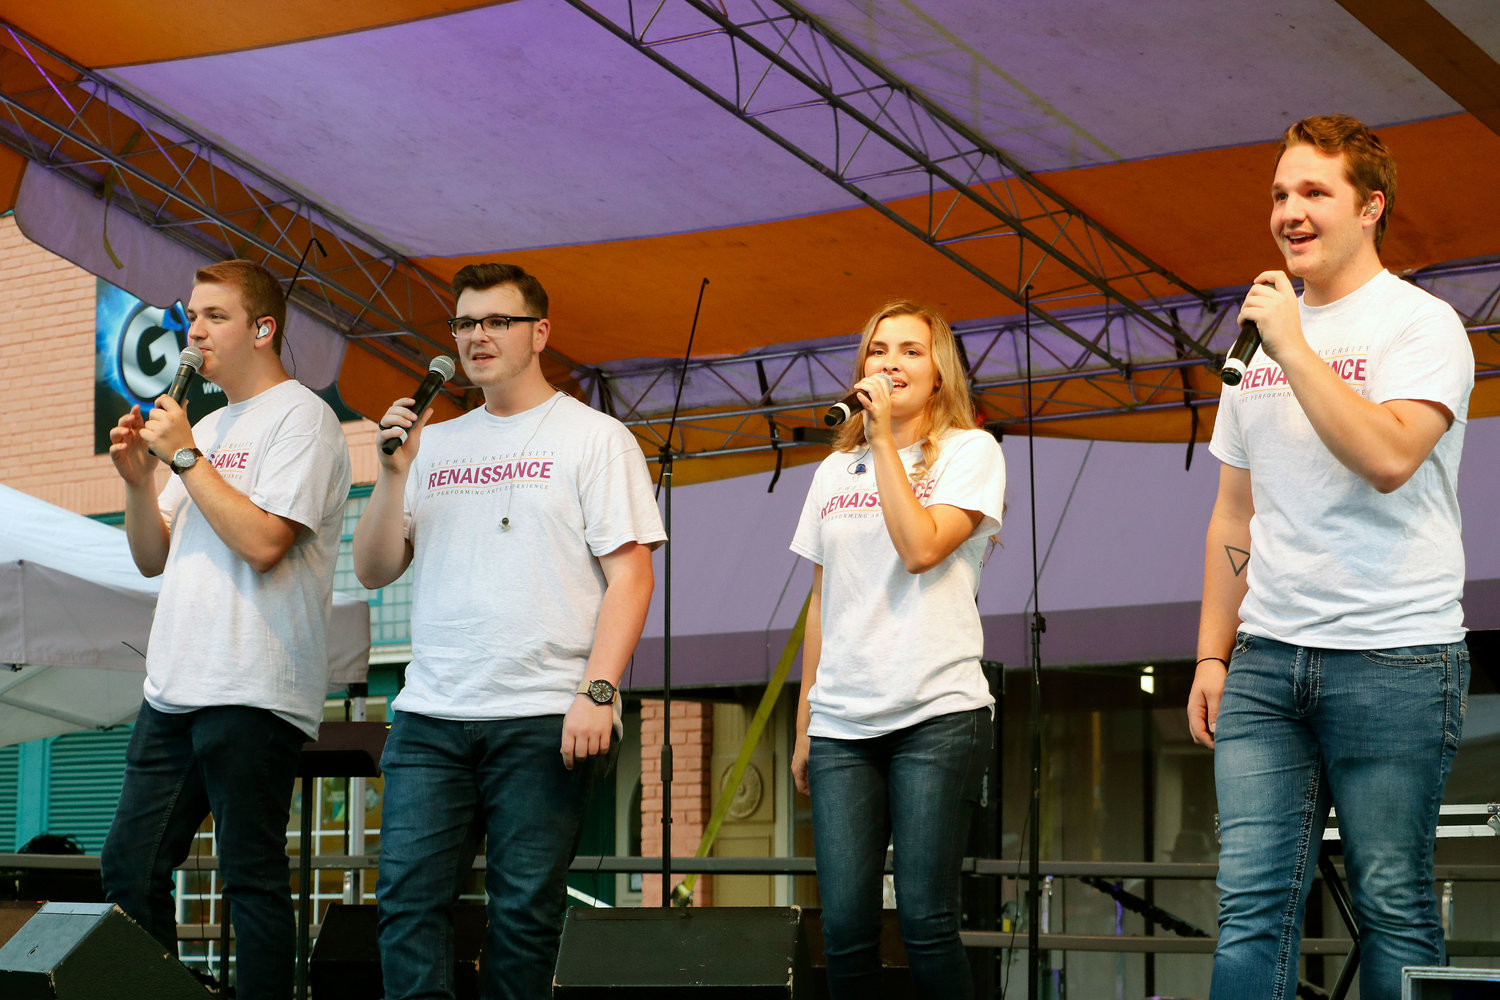 Bethel's Renaissance Gospel Quartet performed on the main stage.